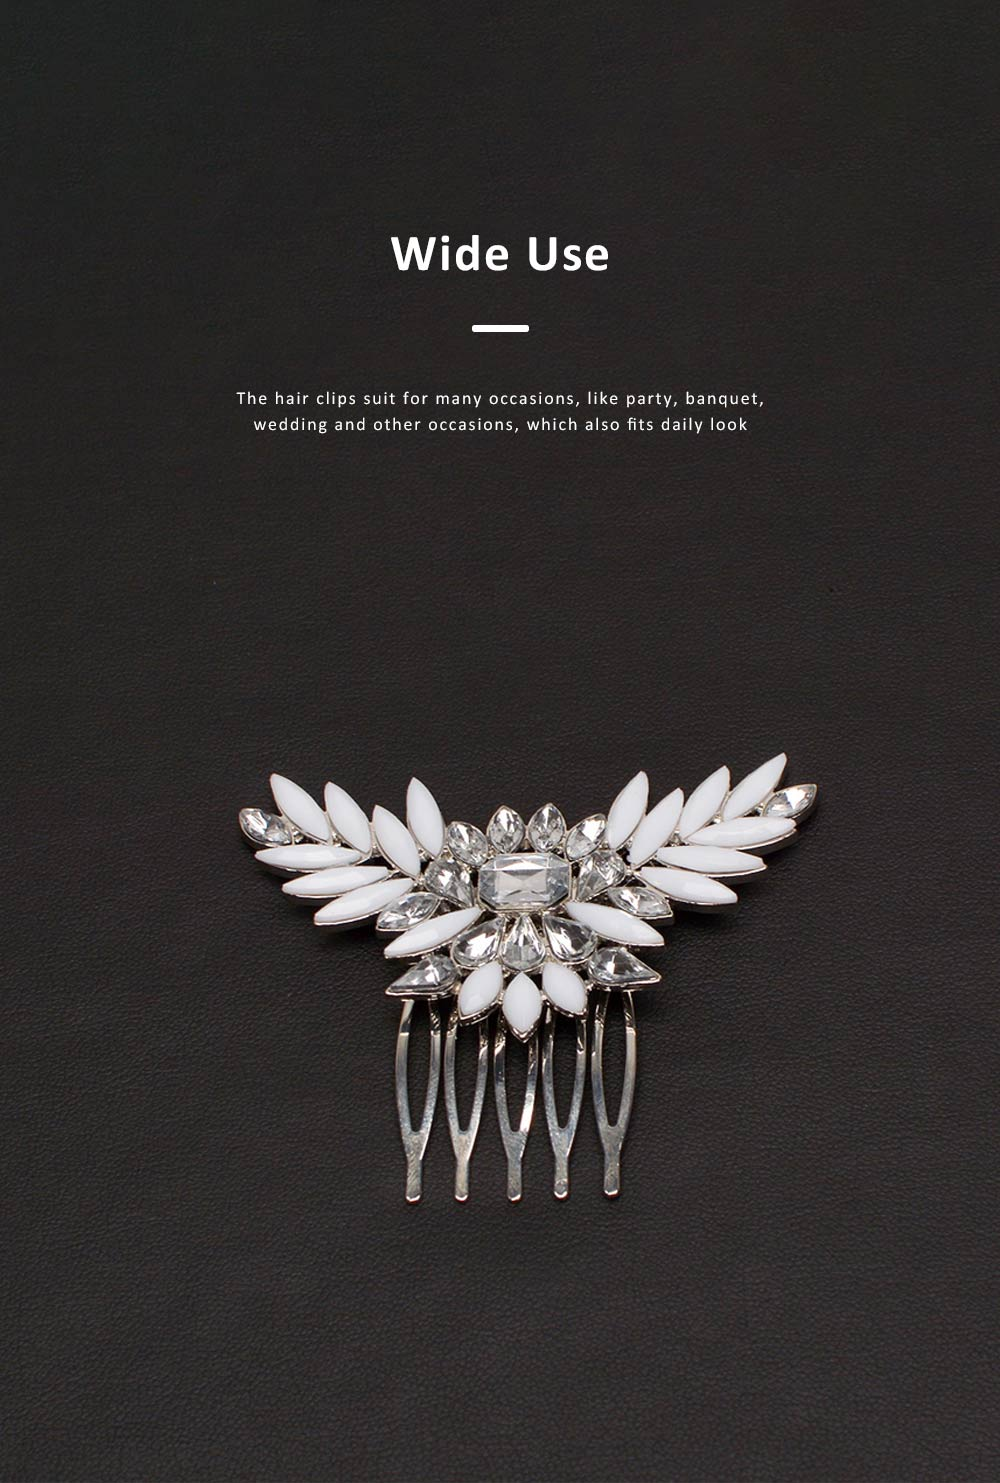 Chic Diamond Alloy Hair Clip Stylish Hair Pin for Women Girls Suitable for Different Hair Styles 2